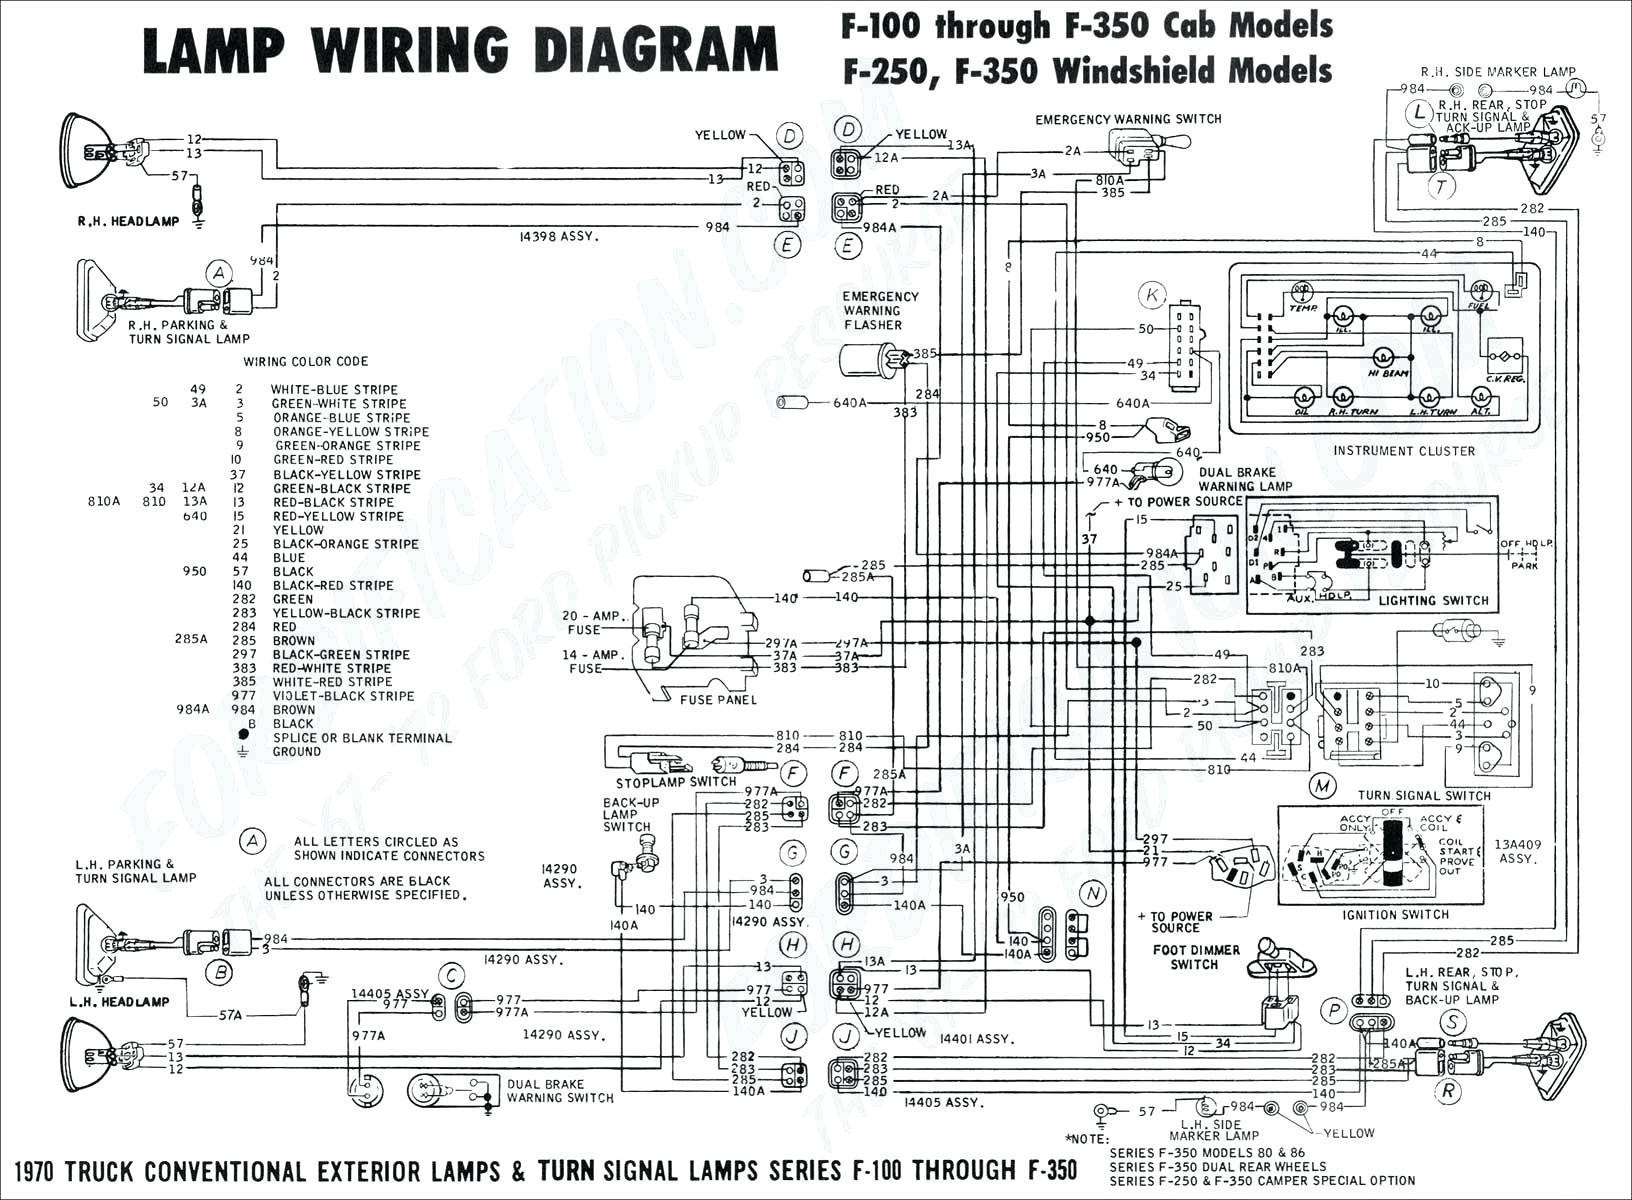 electric space heater wiring diagram awesome 3 phase heater wiring schematics wiring diagrams e280a2